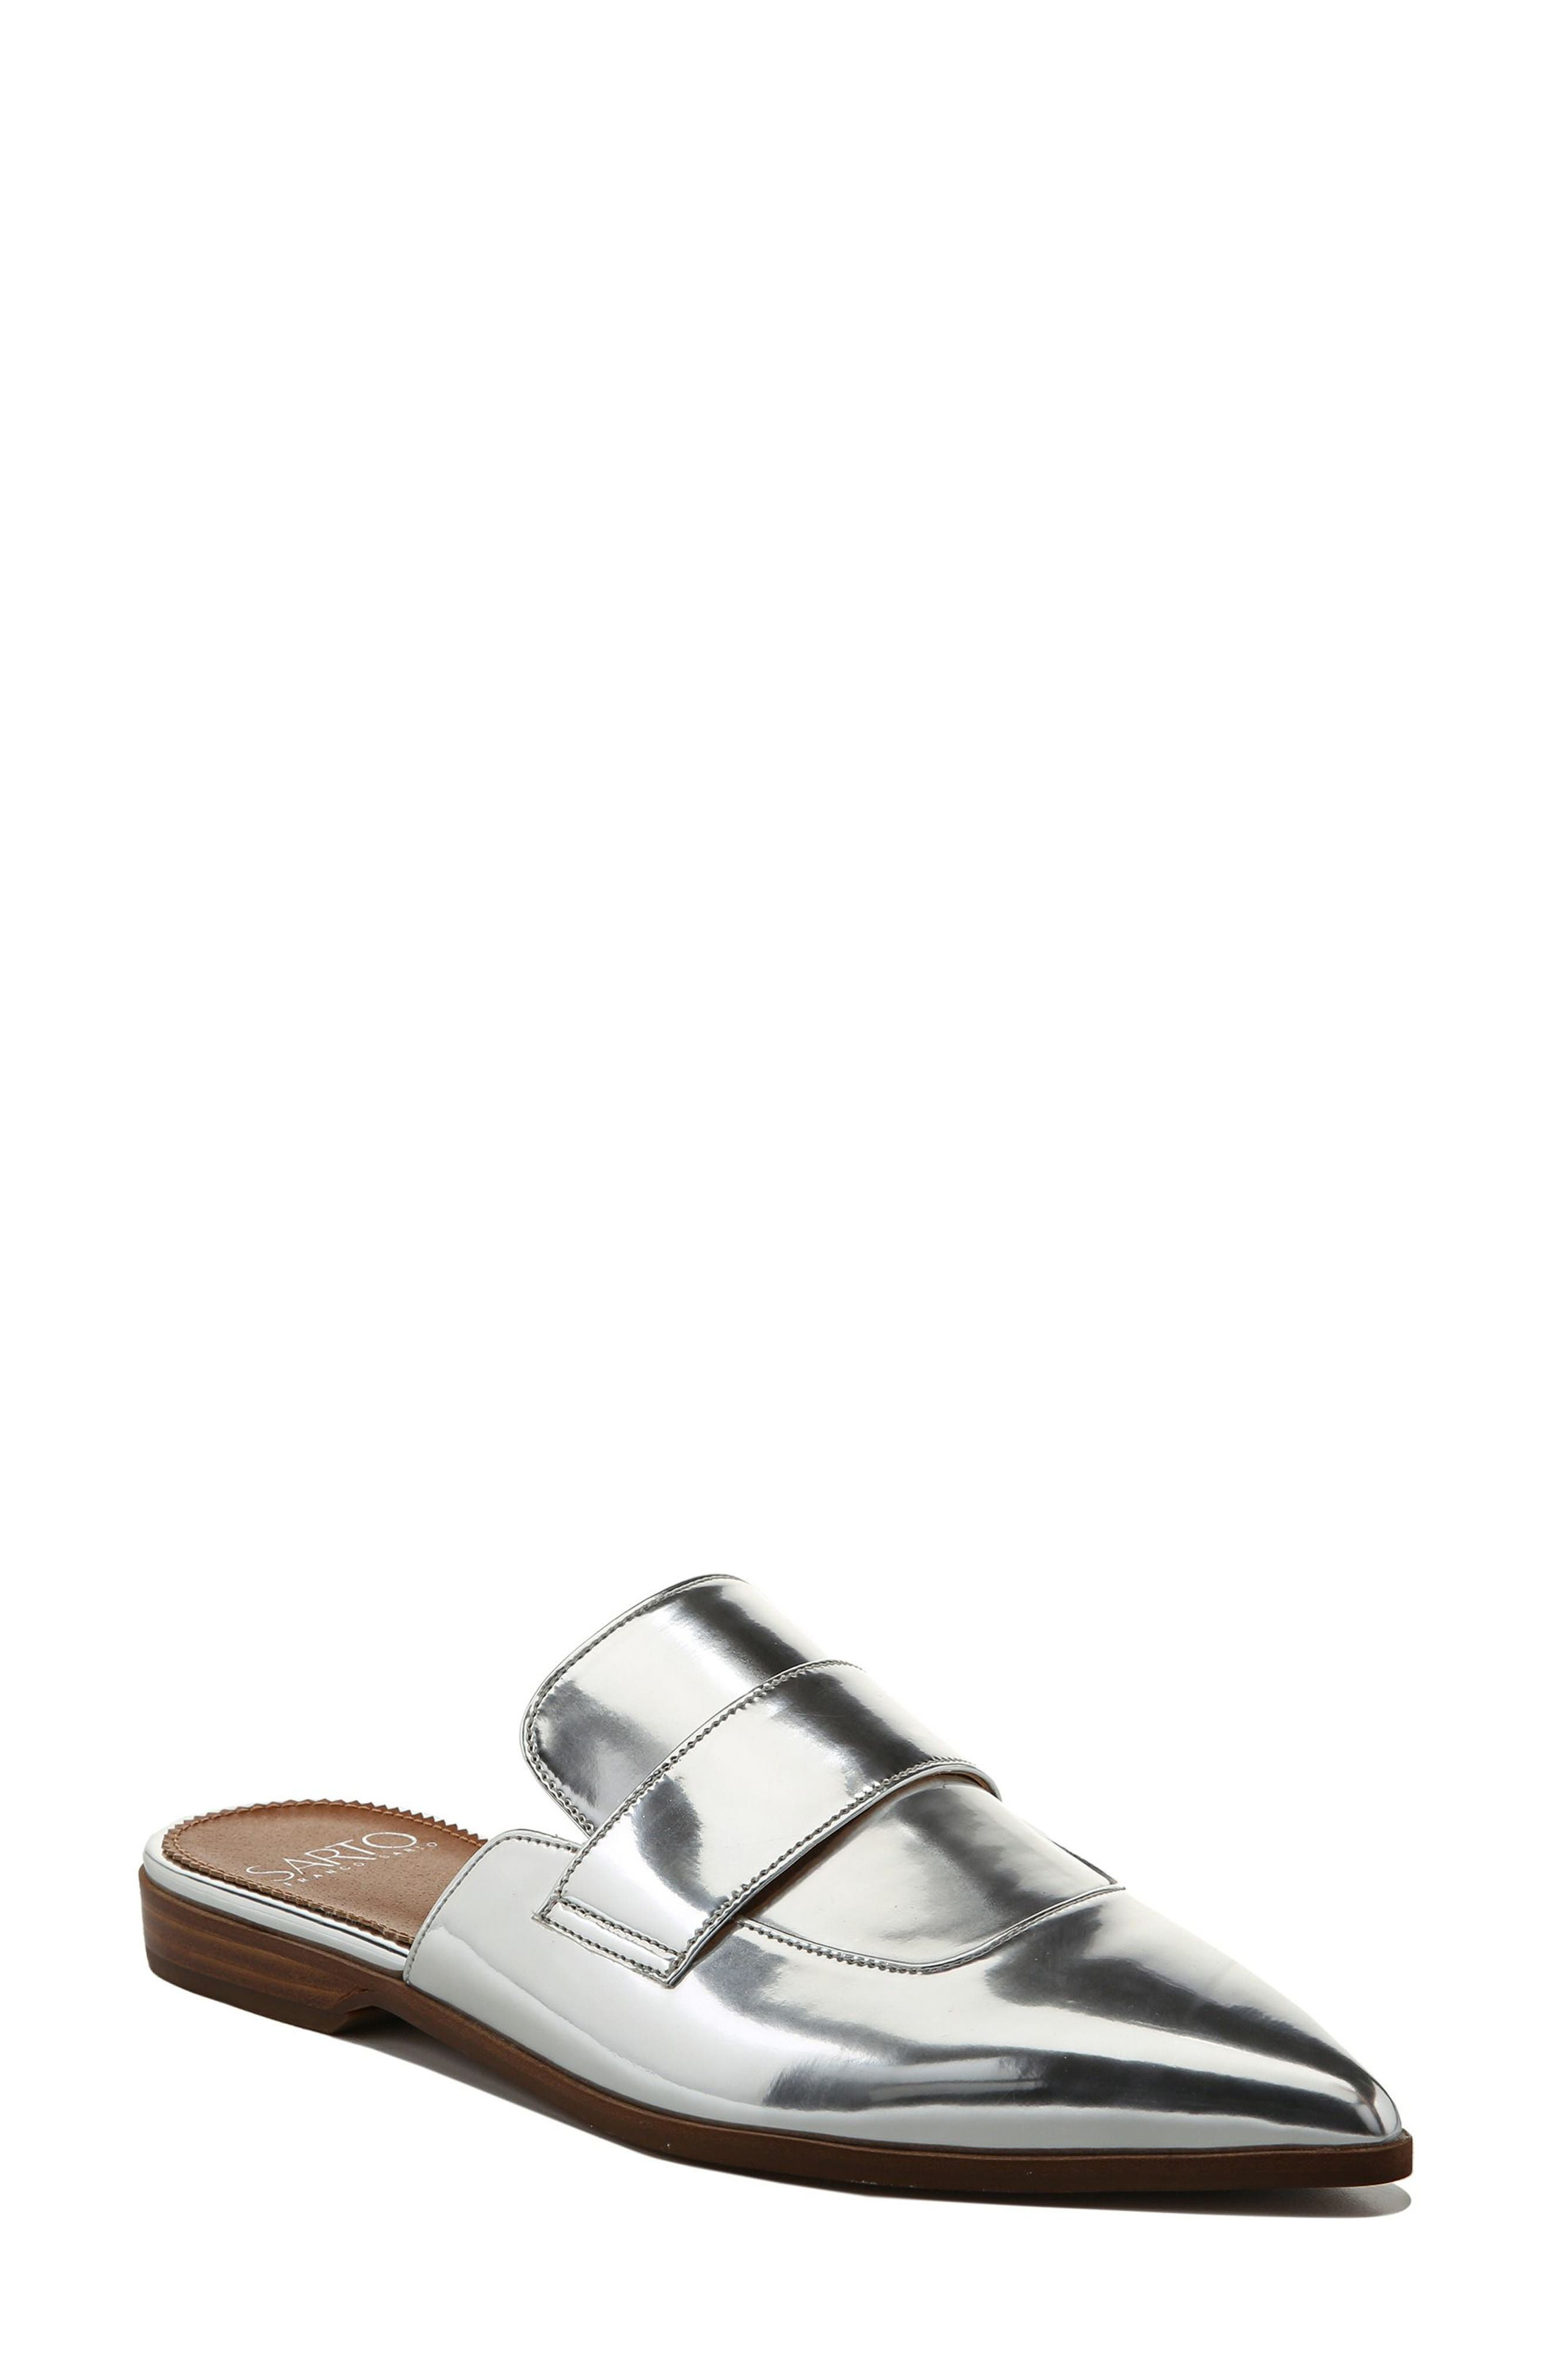 Palmer Mule,                             Main thumbnail 1, color,                             Silver Leather